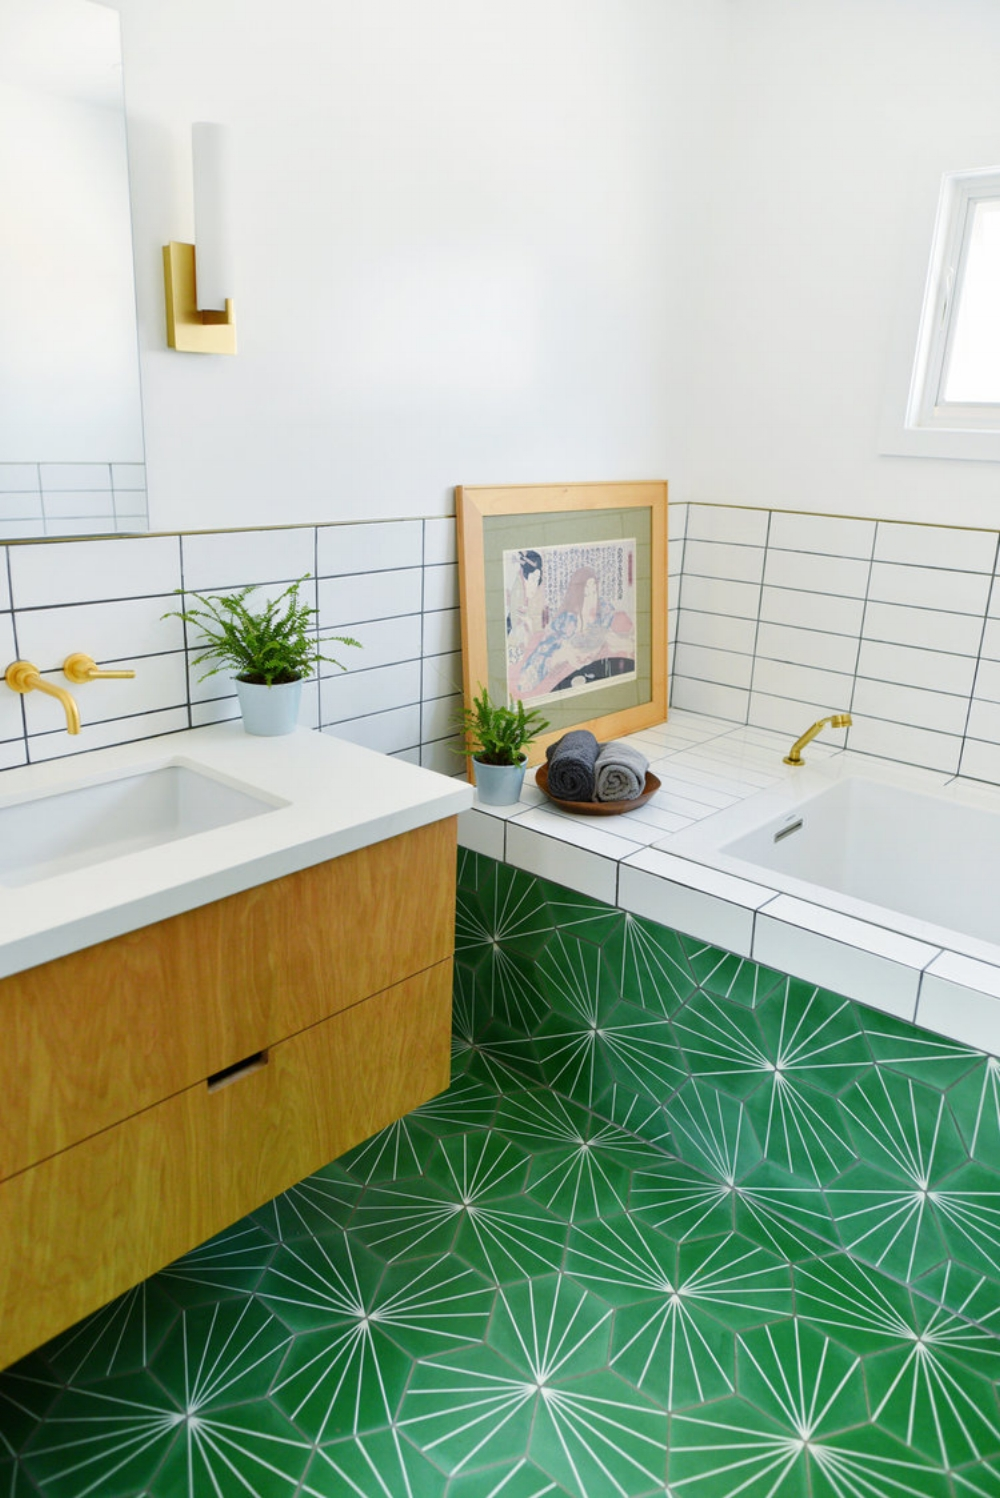 10 More Bathrooms with Incredible Tile — Cobalt + Gold